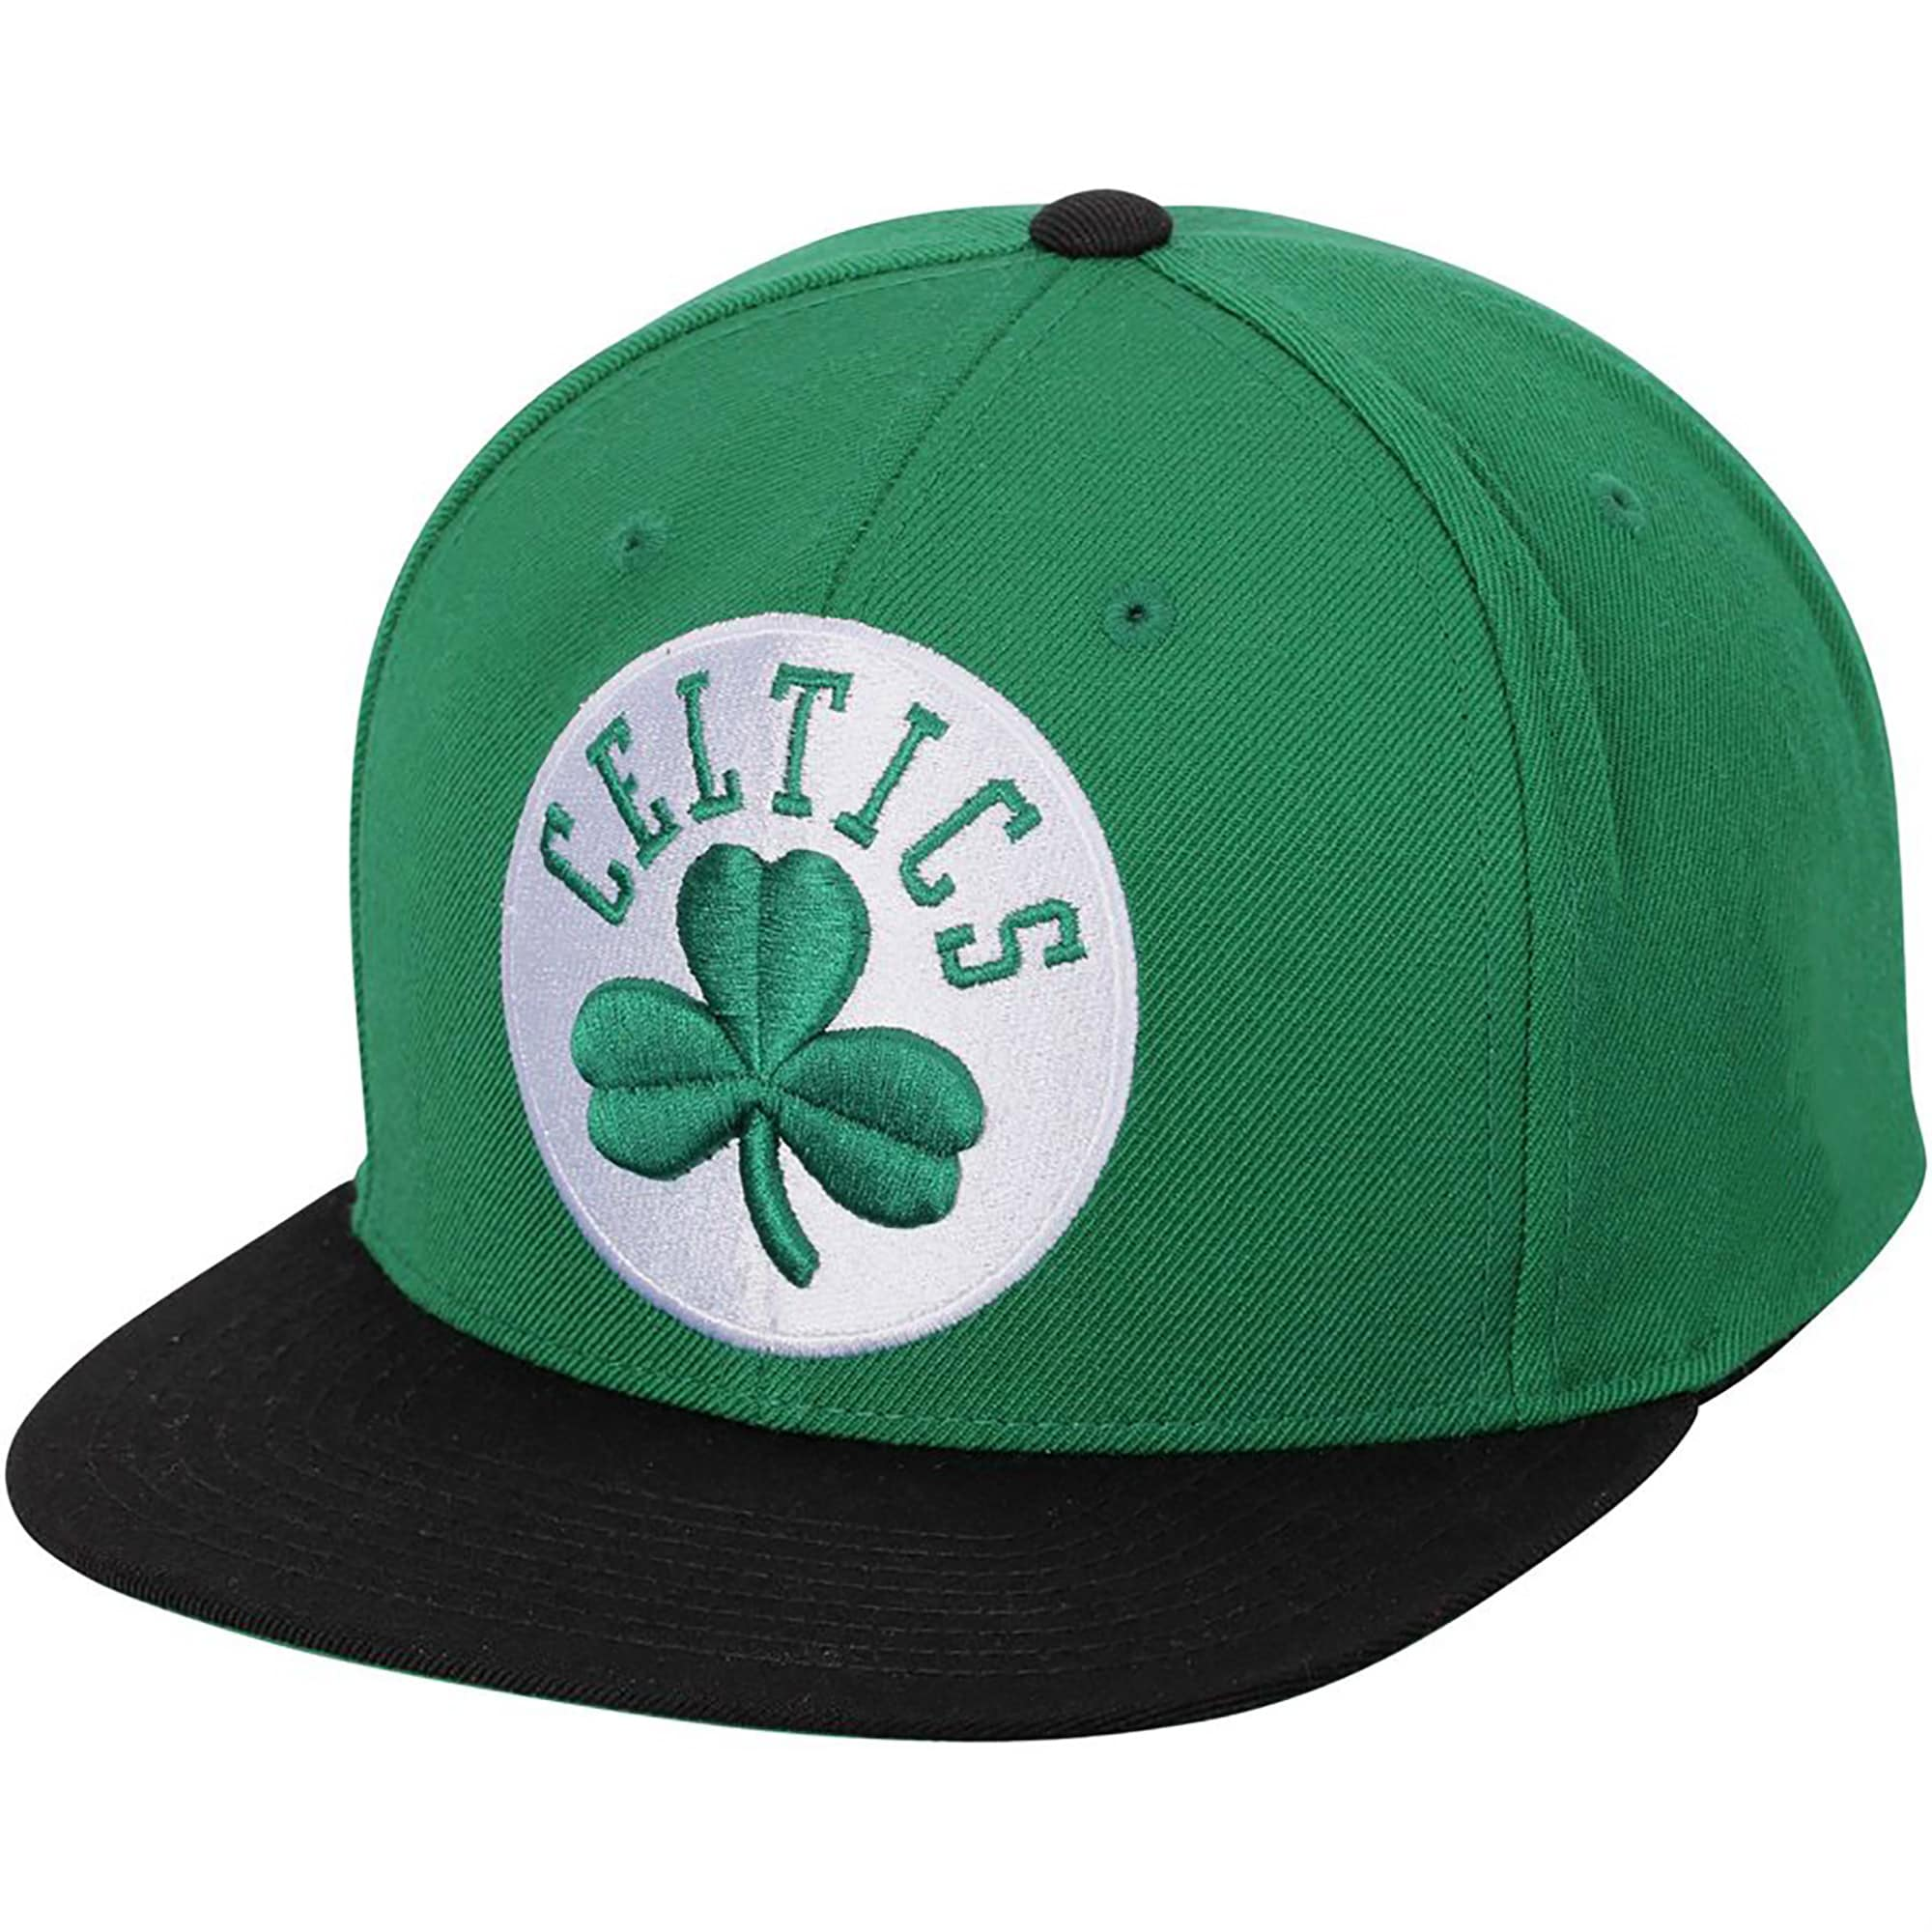 Boston Celtics Mitchell & Ness XL Logo Two-Tone Snapback Adjustable Hat - Kelly Green/Black